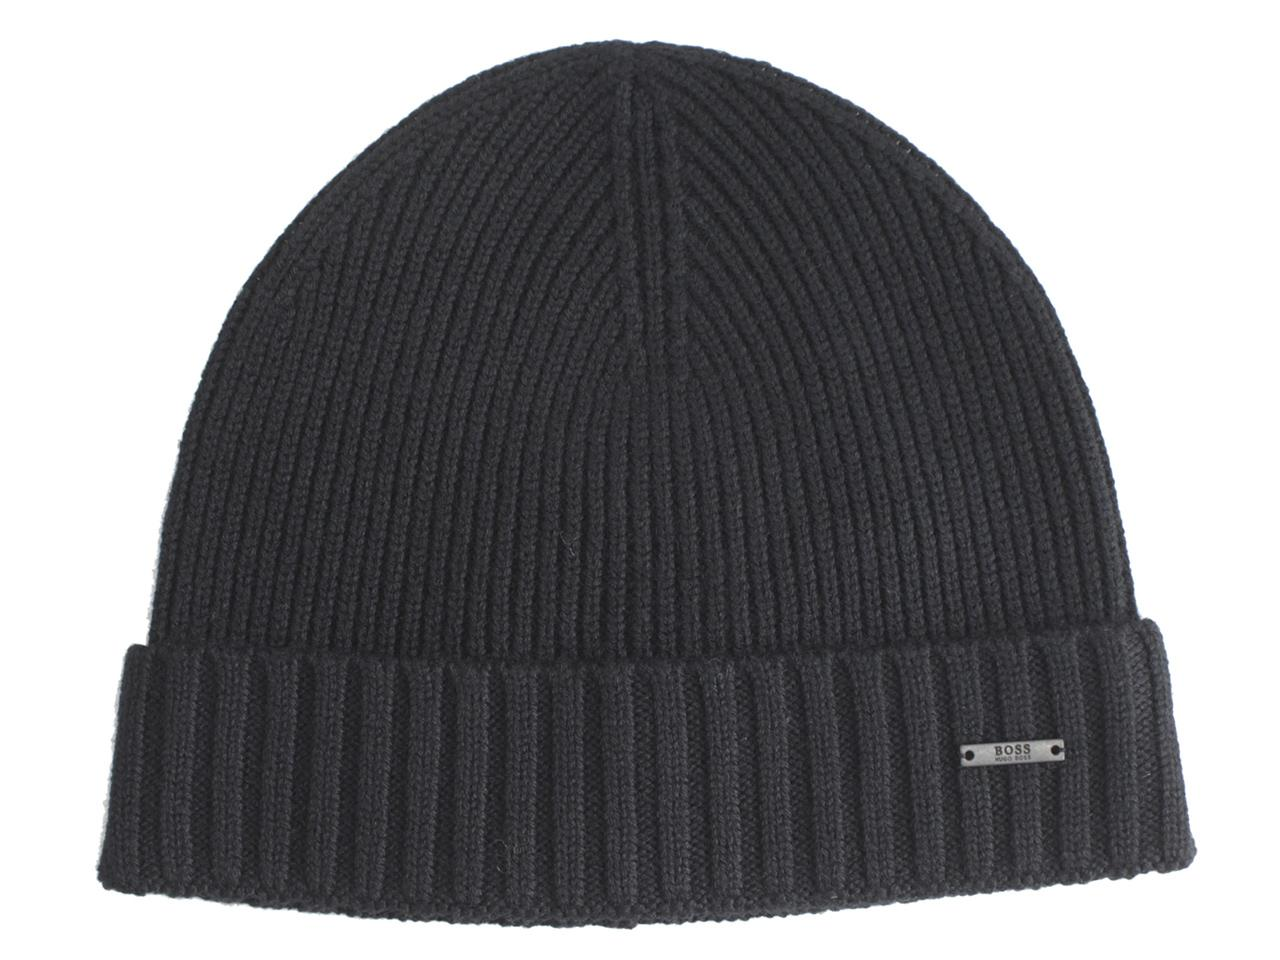 c38c46f4 Details about Hugo Boss Men's Fati Wool Beanie Hat (One Size Fits Most)